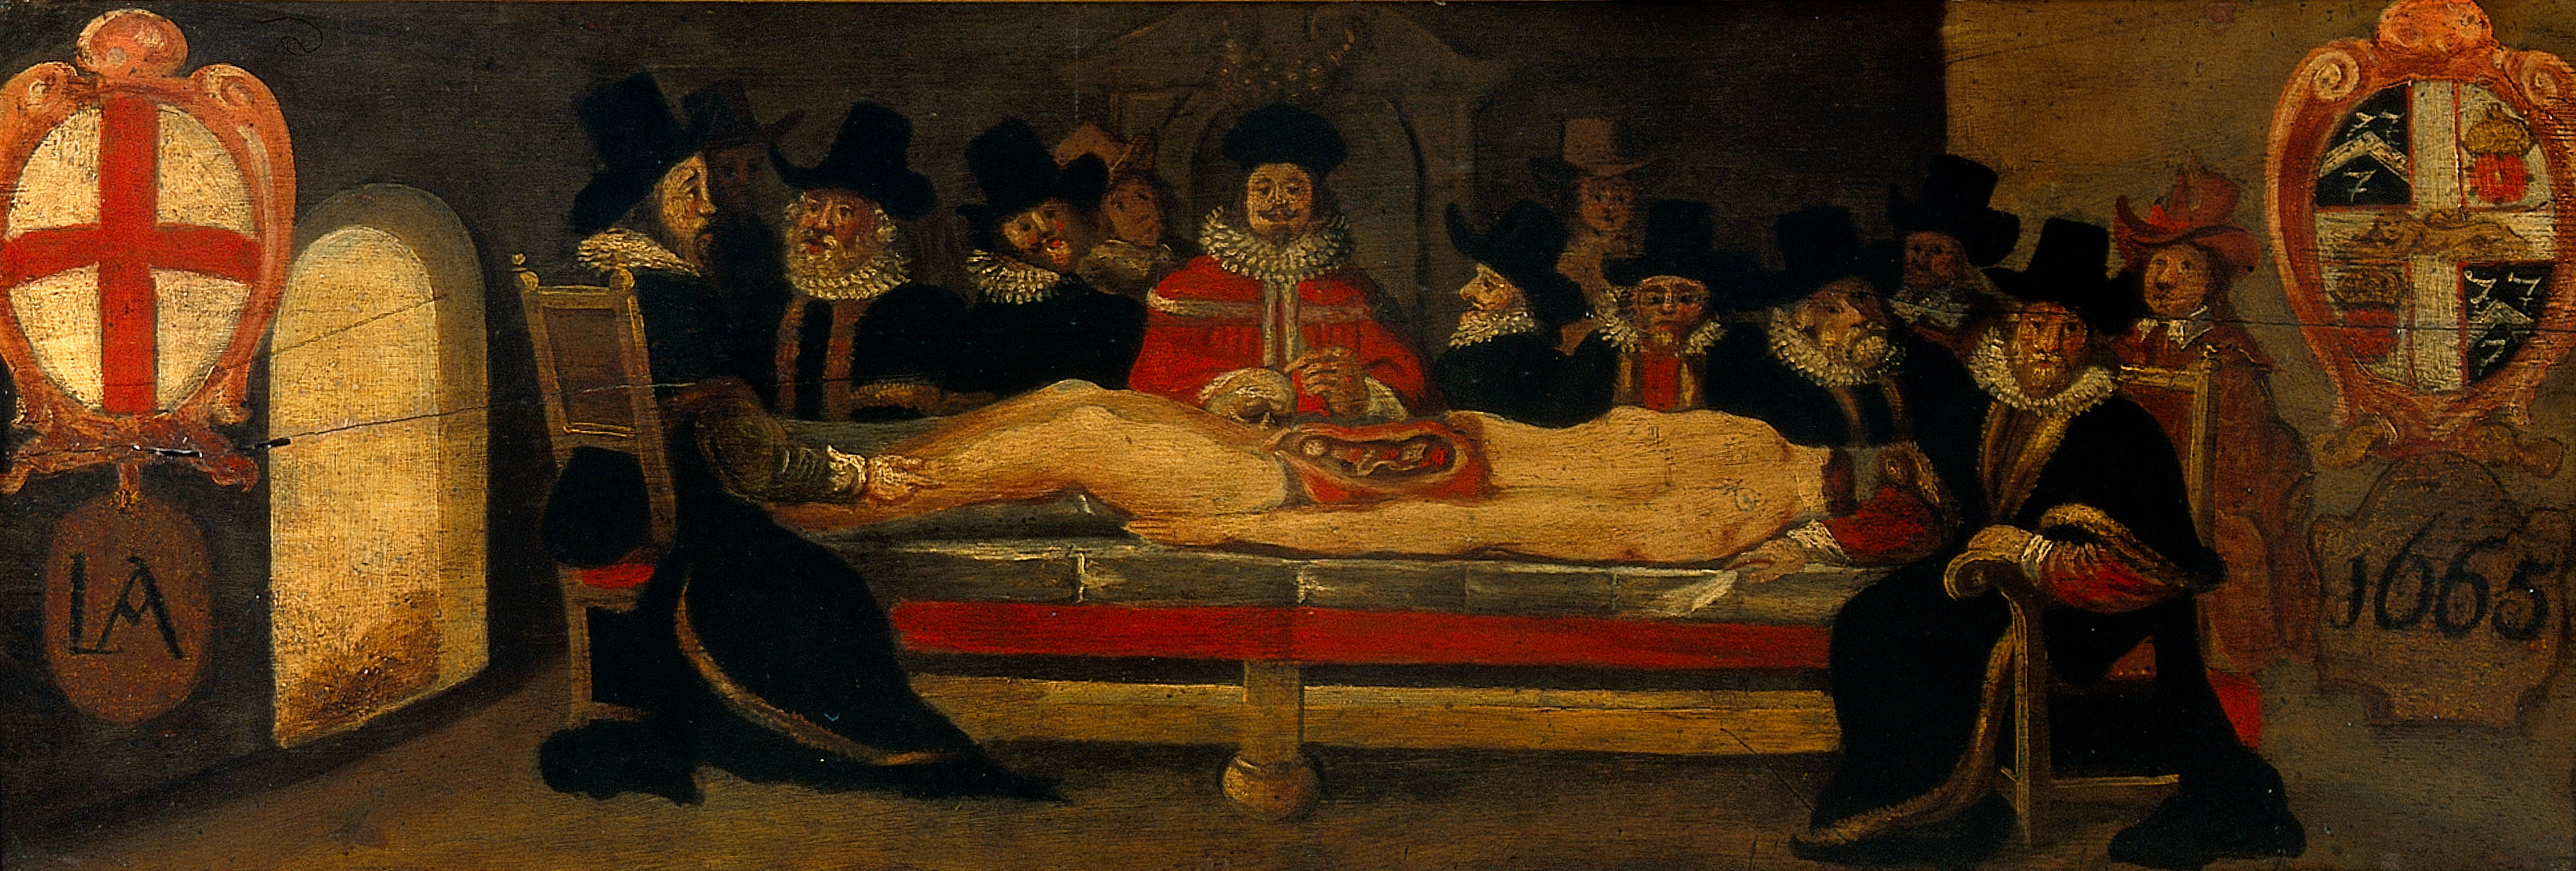 File:The dissection of a corpse before a company of surgeons (?).